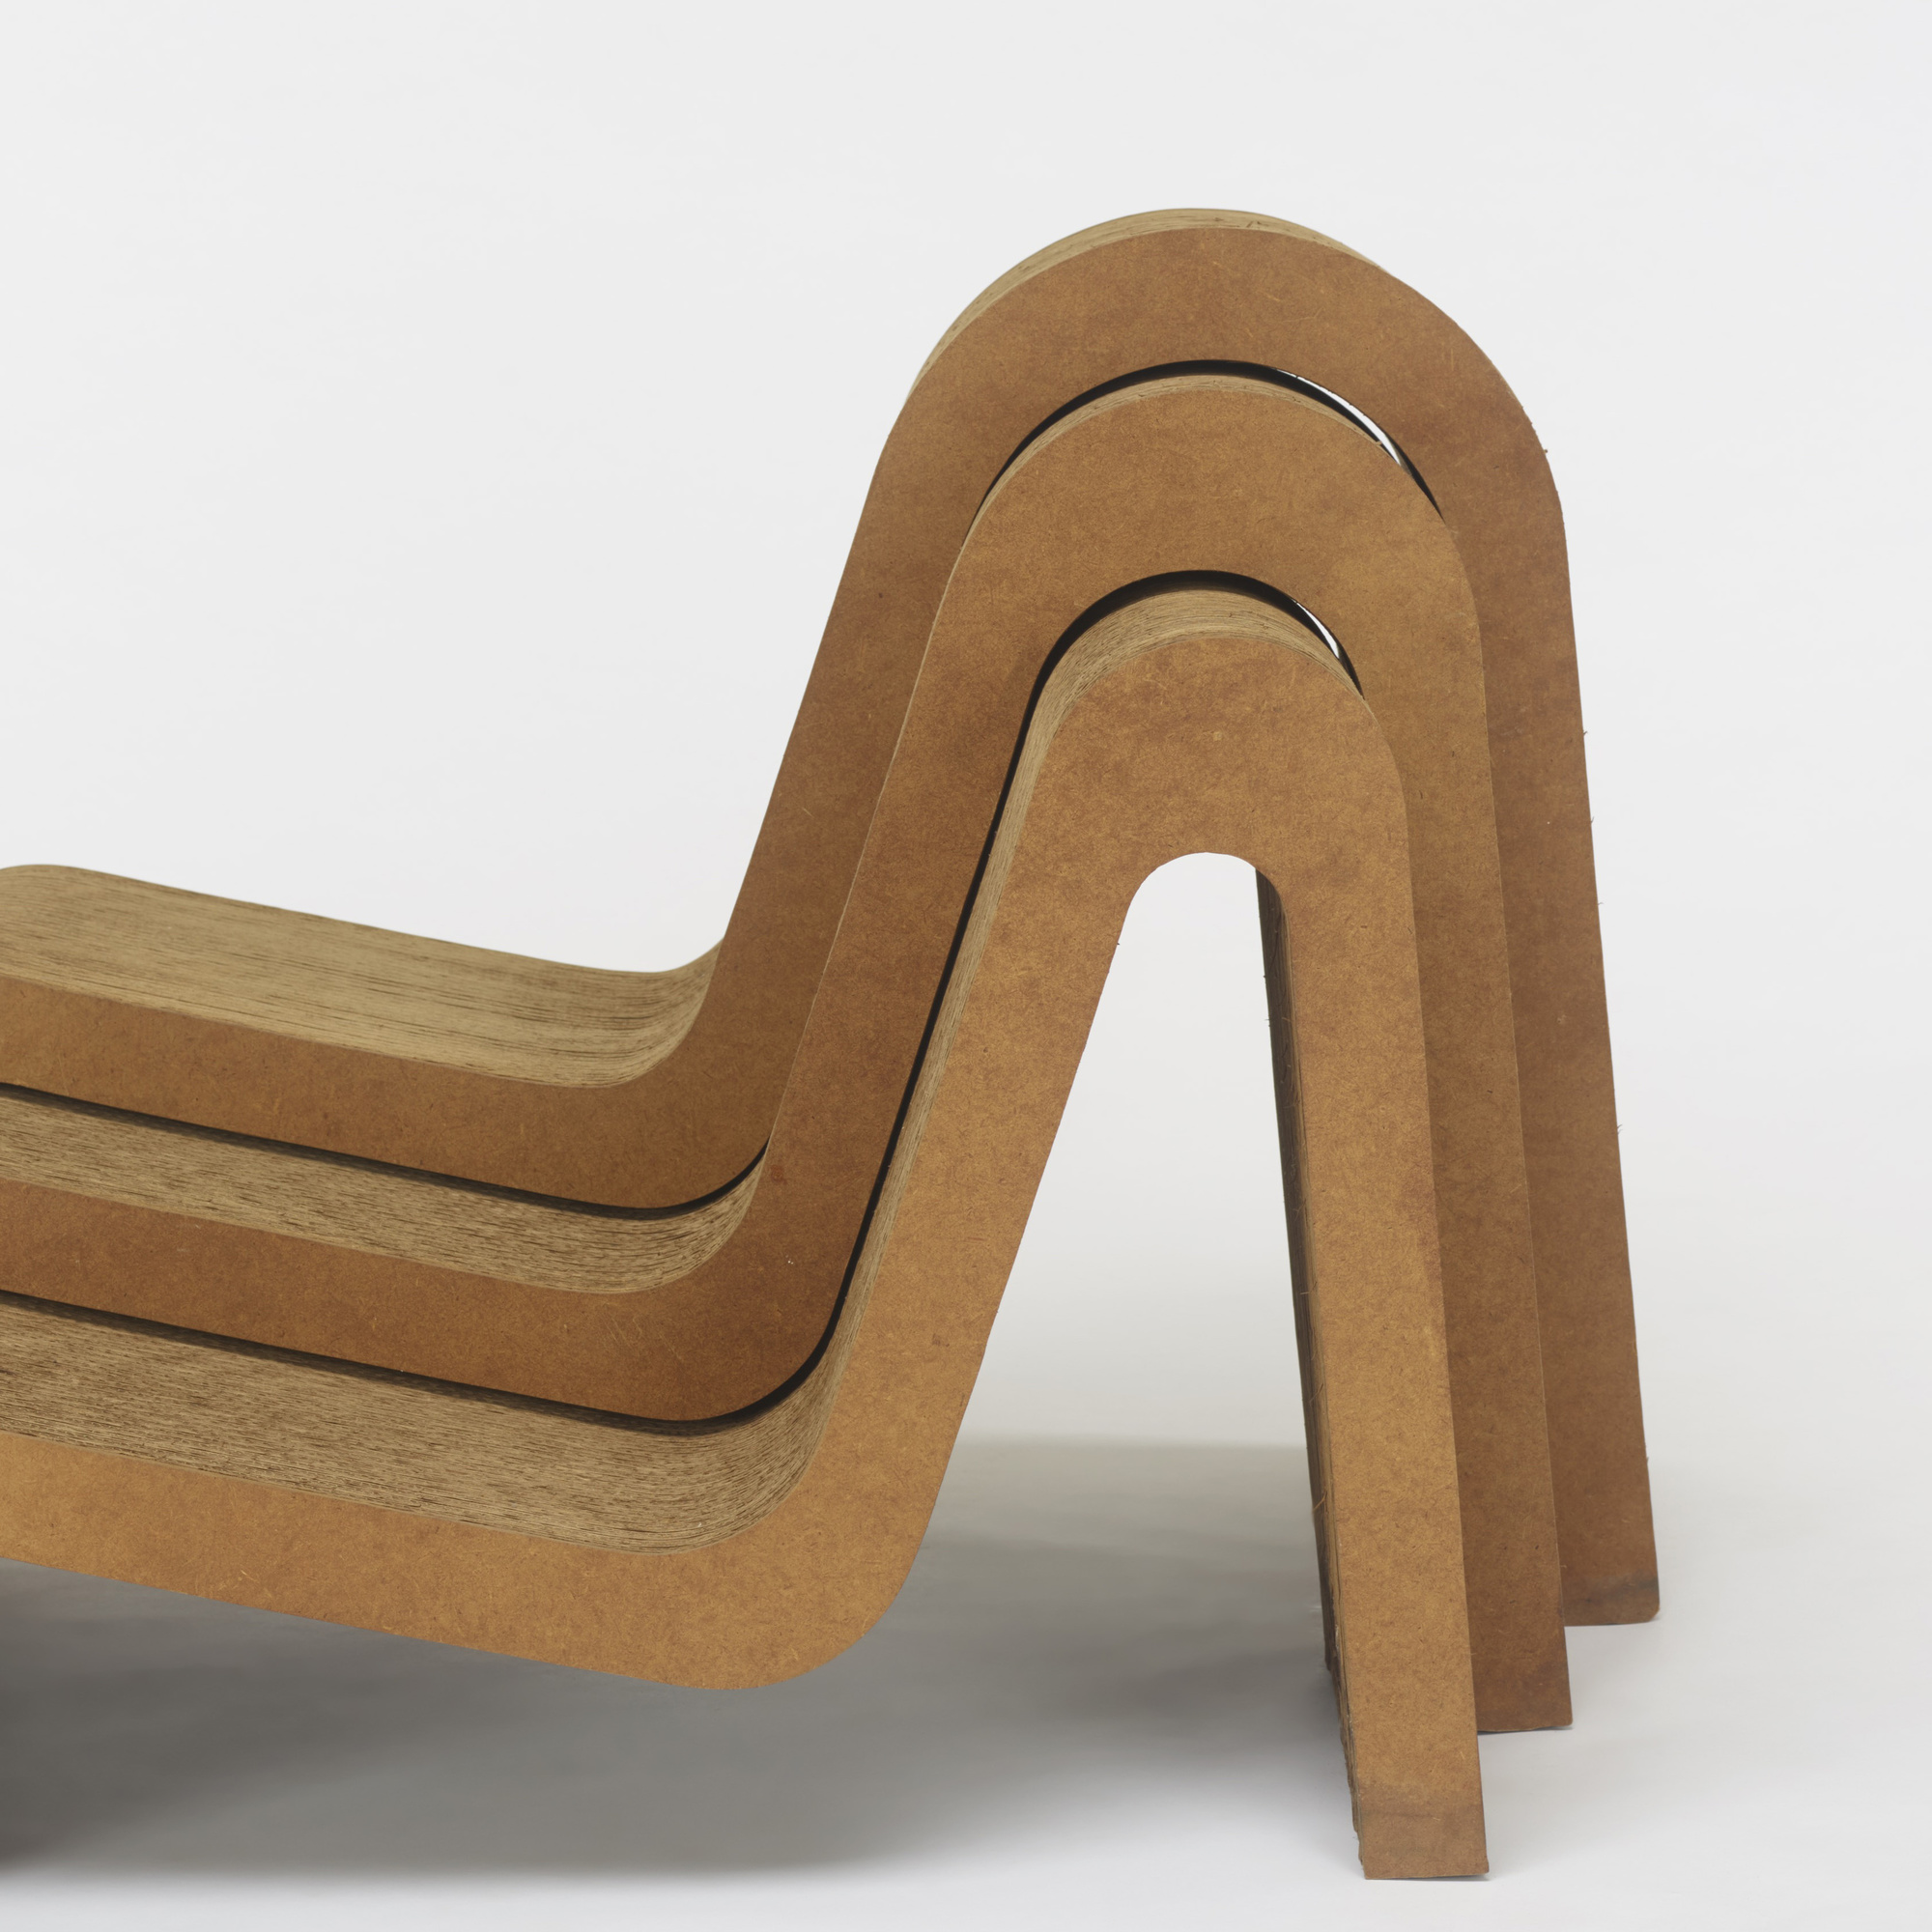 421: Frank Gehry / nesting chairs, set of three (3 of 3)